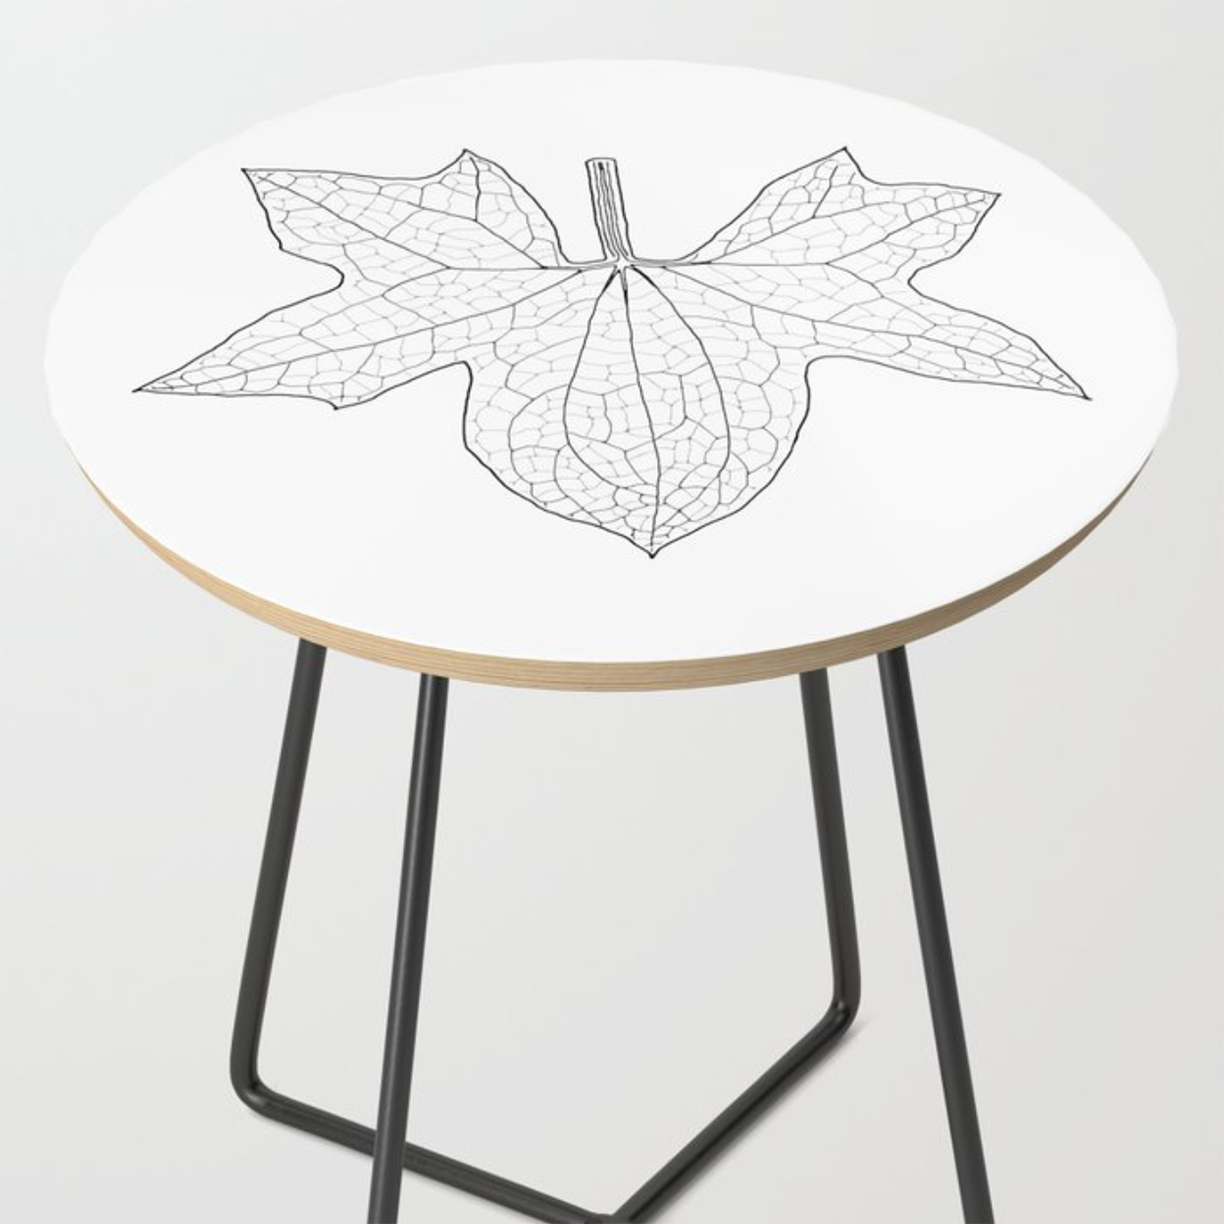 SIDE TABLES (round)